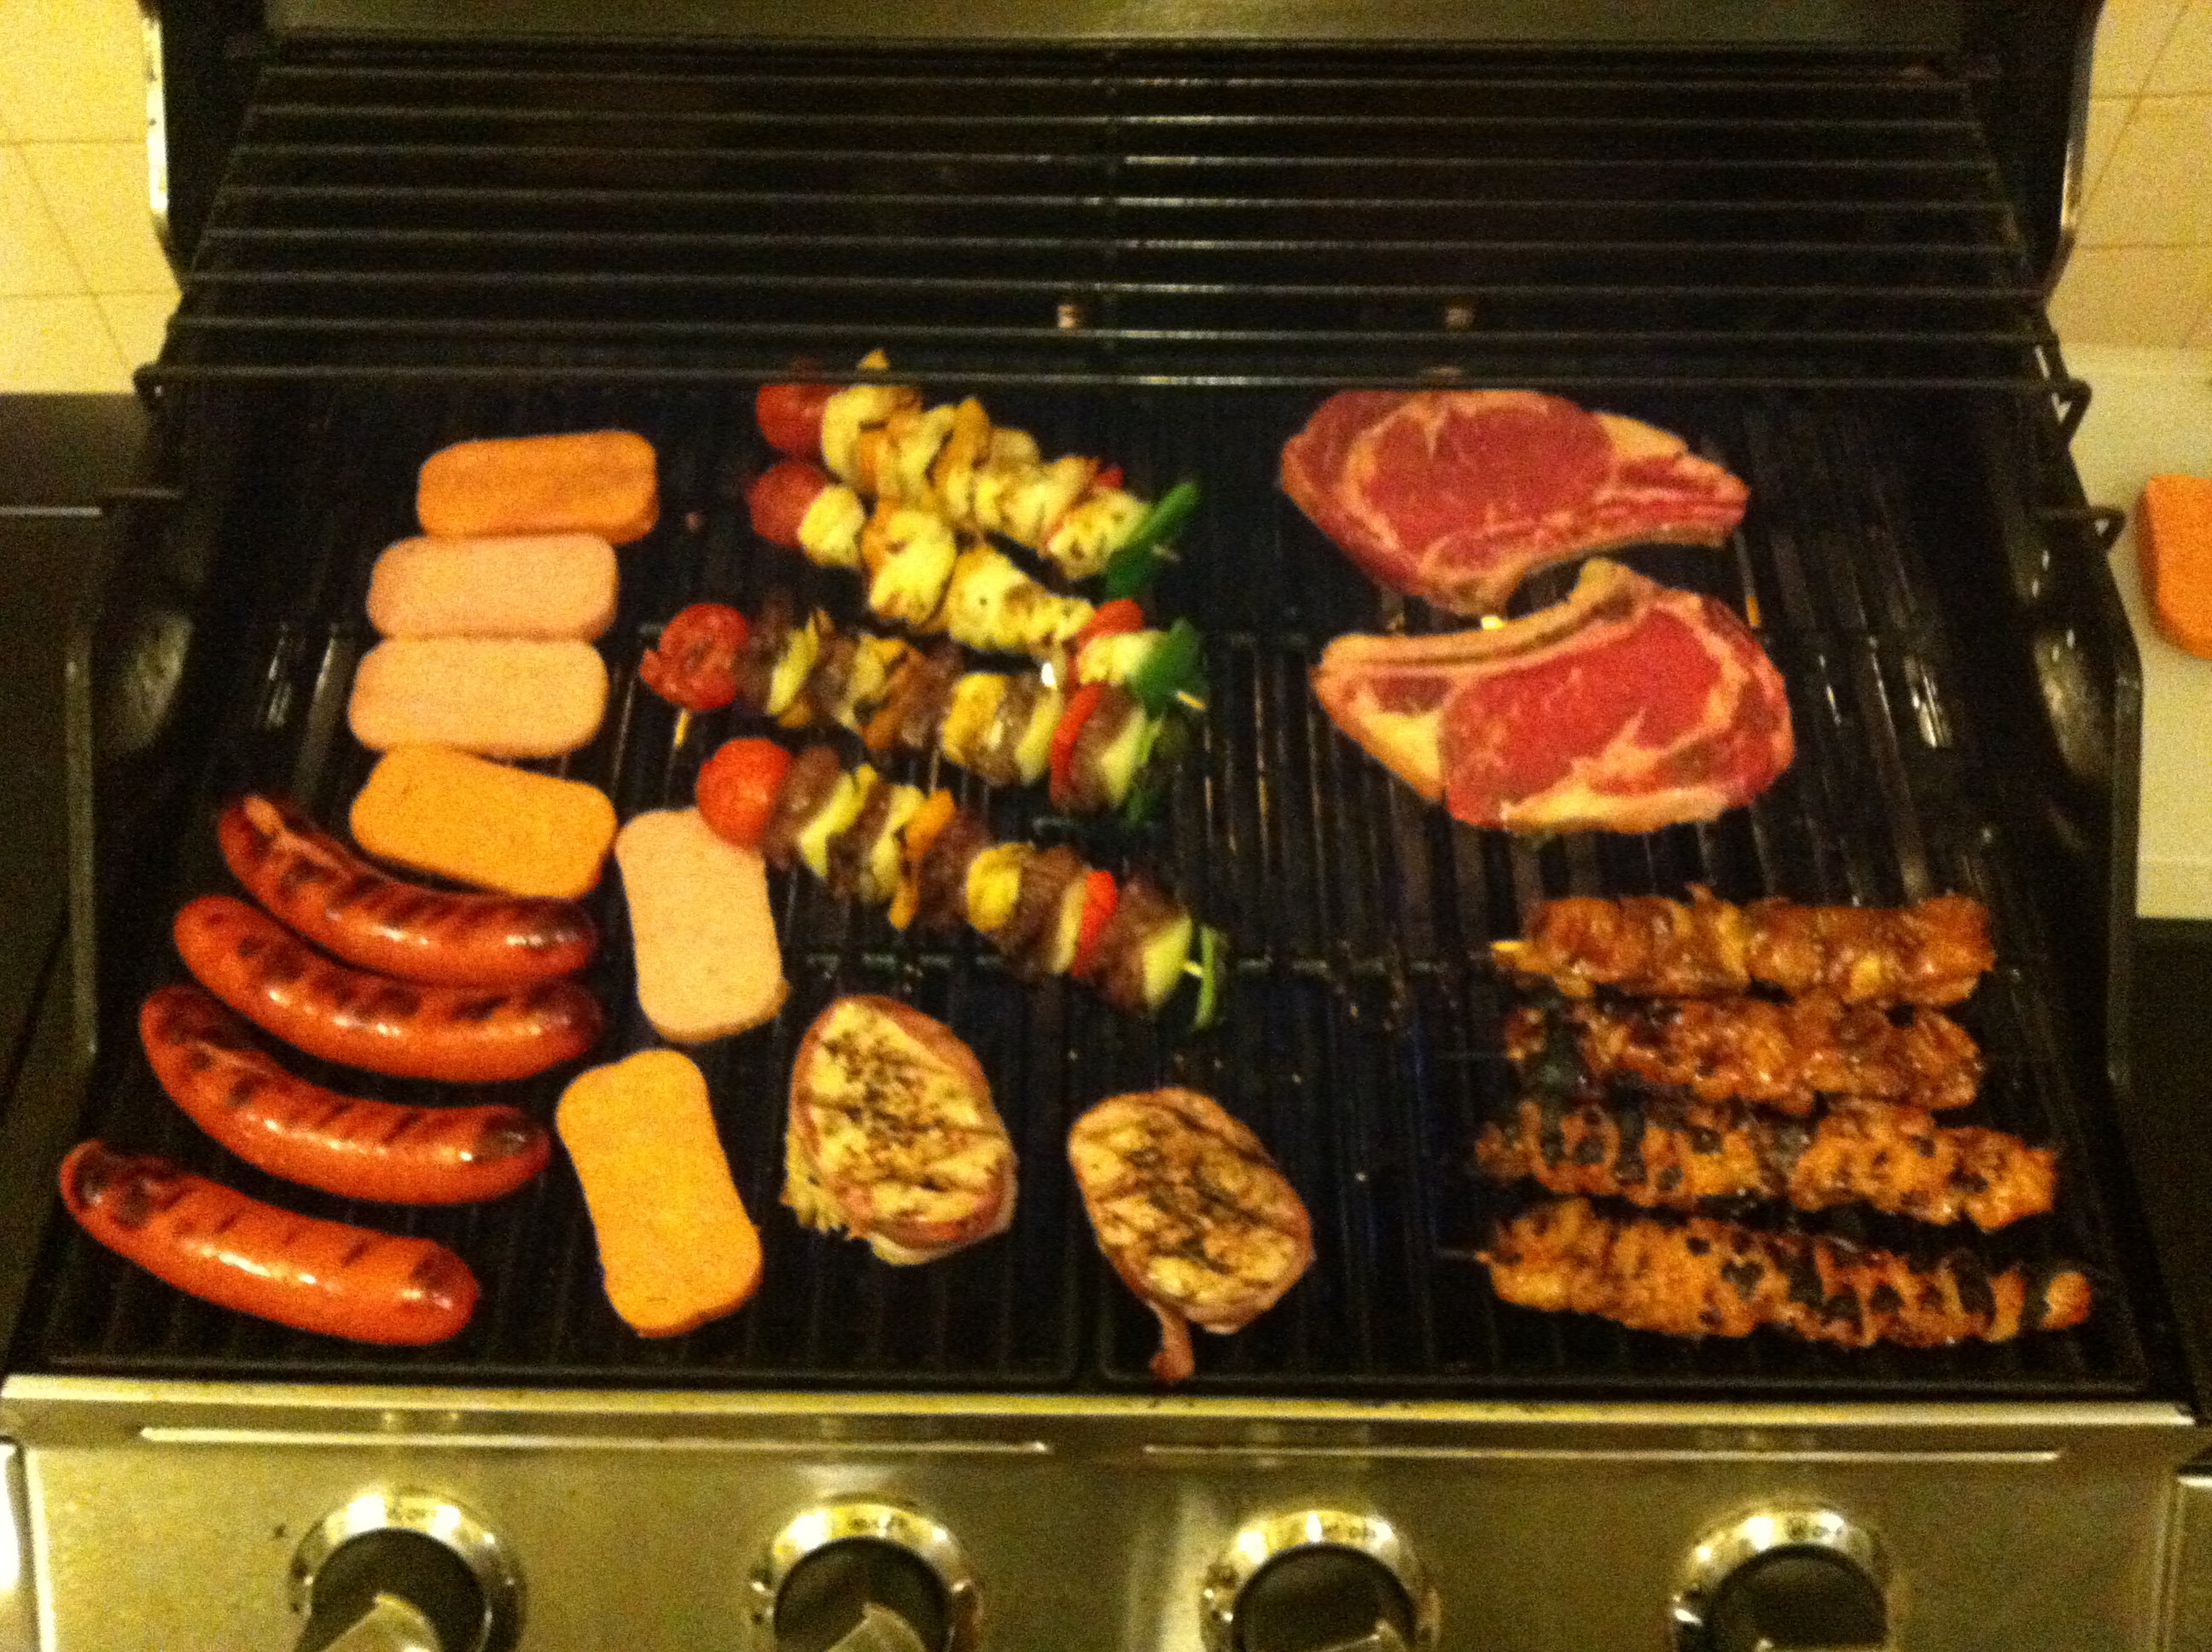 The Grilling of the Meats